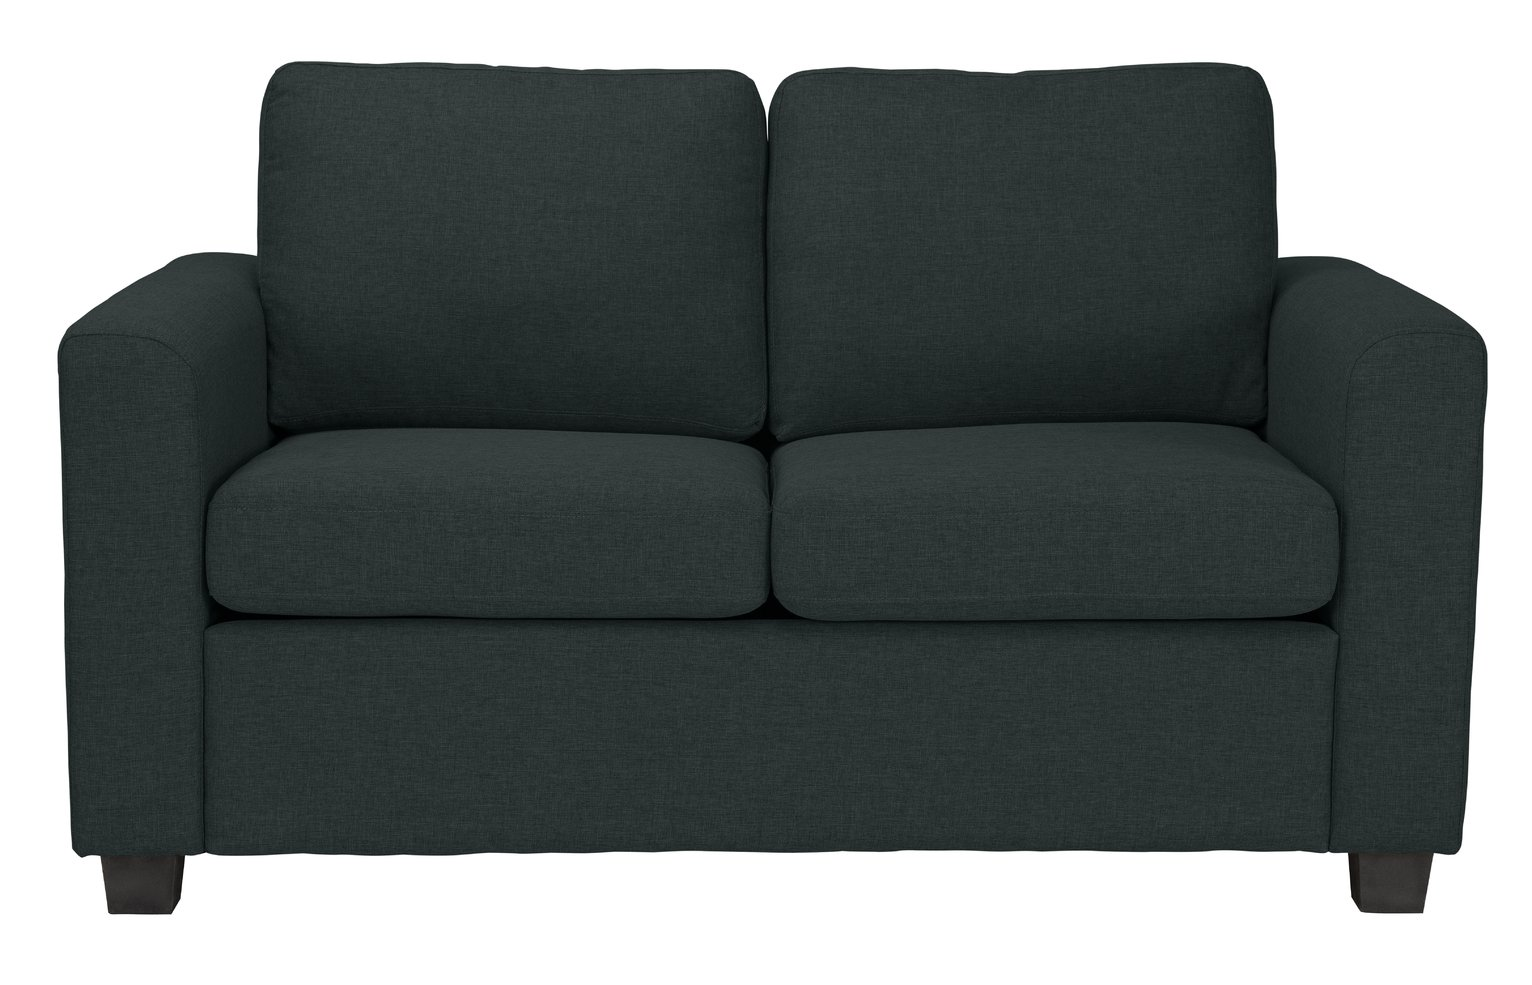 Argos Home Apartment 2 Seater Fabric Sofa Bed - Charcoal